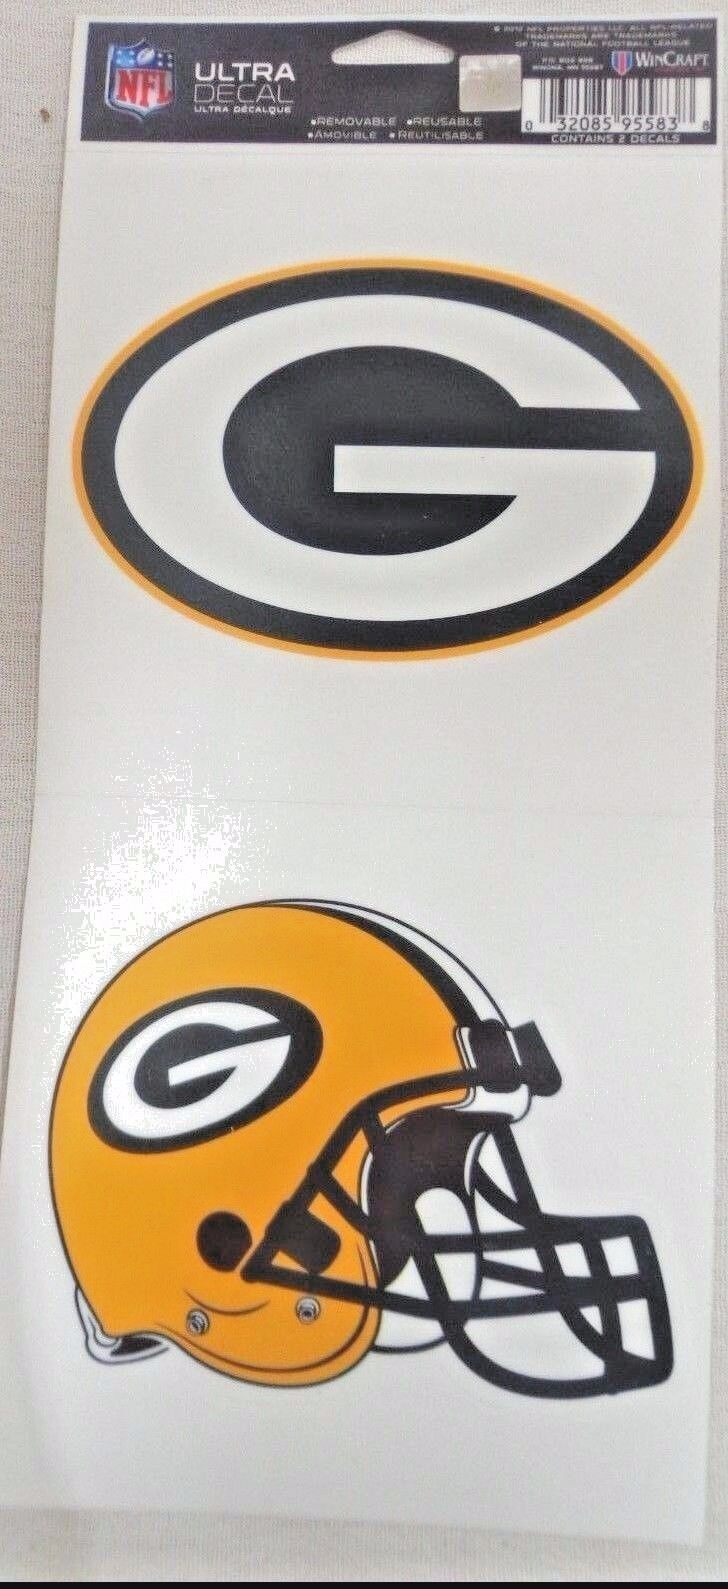 NFL Ultra Decals 2 Pack Set Removable Reusable Sticker Wincraft Green Bay Packers